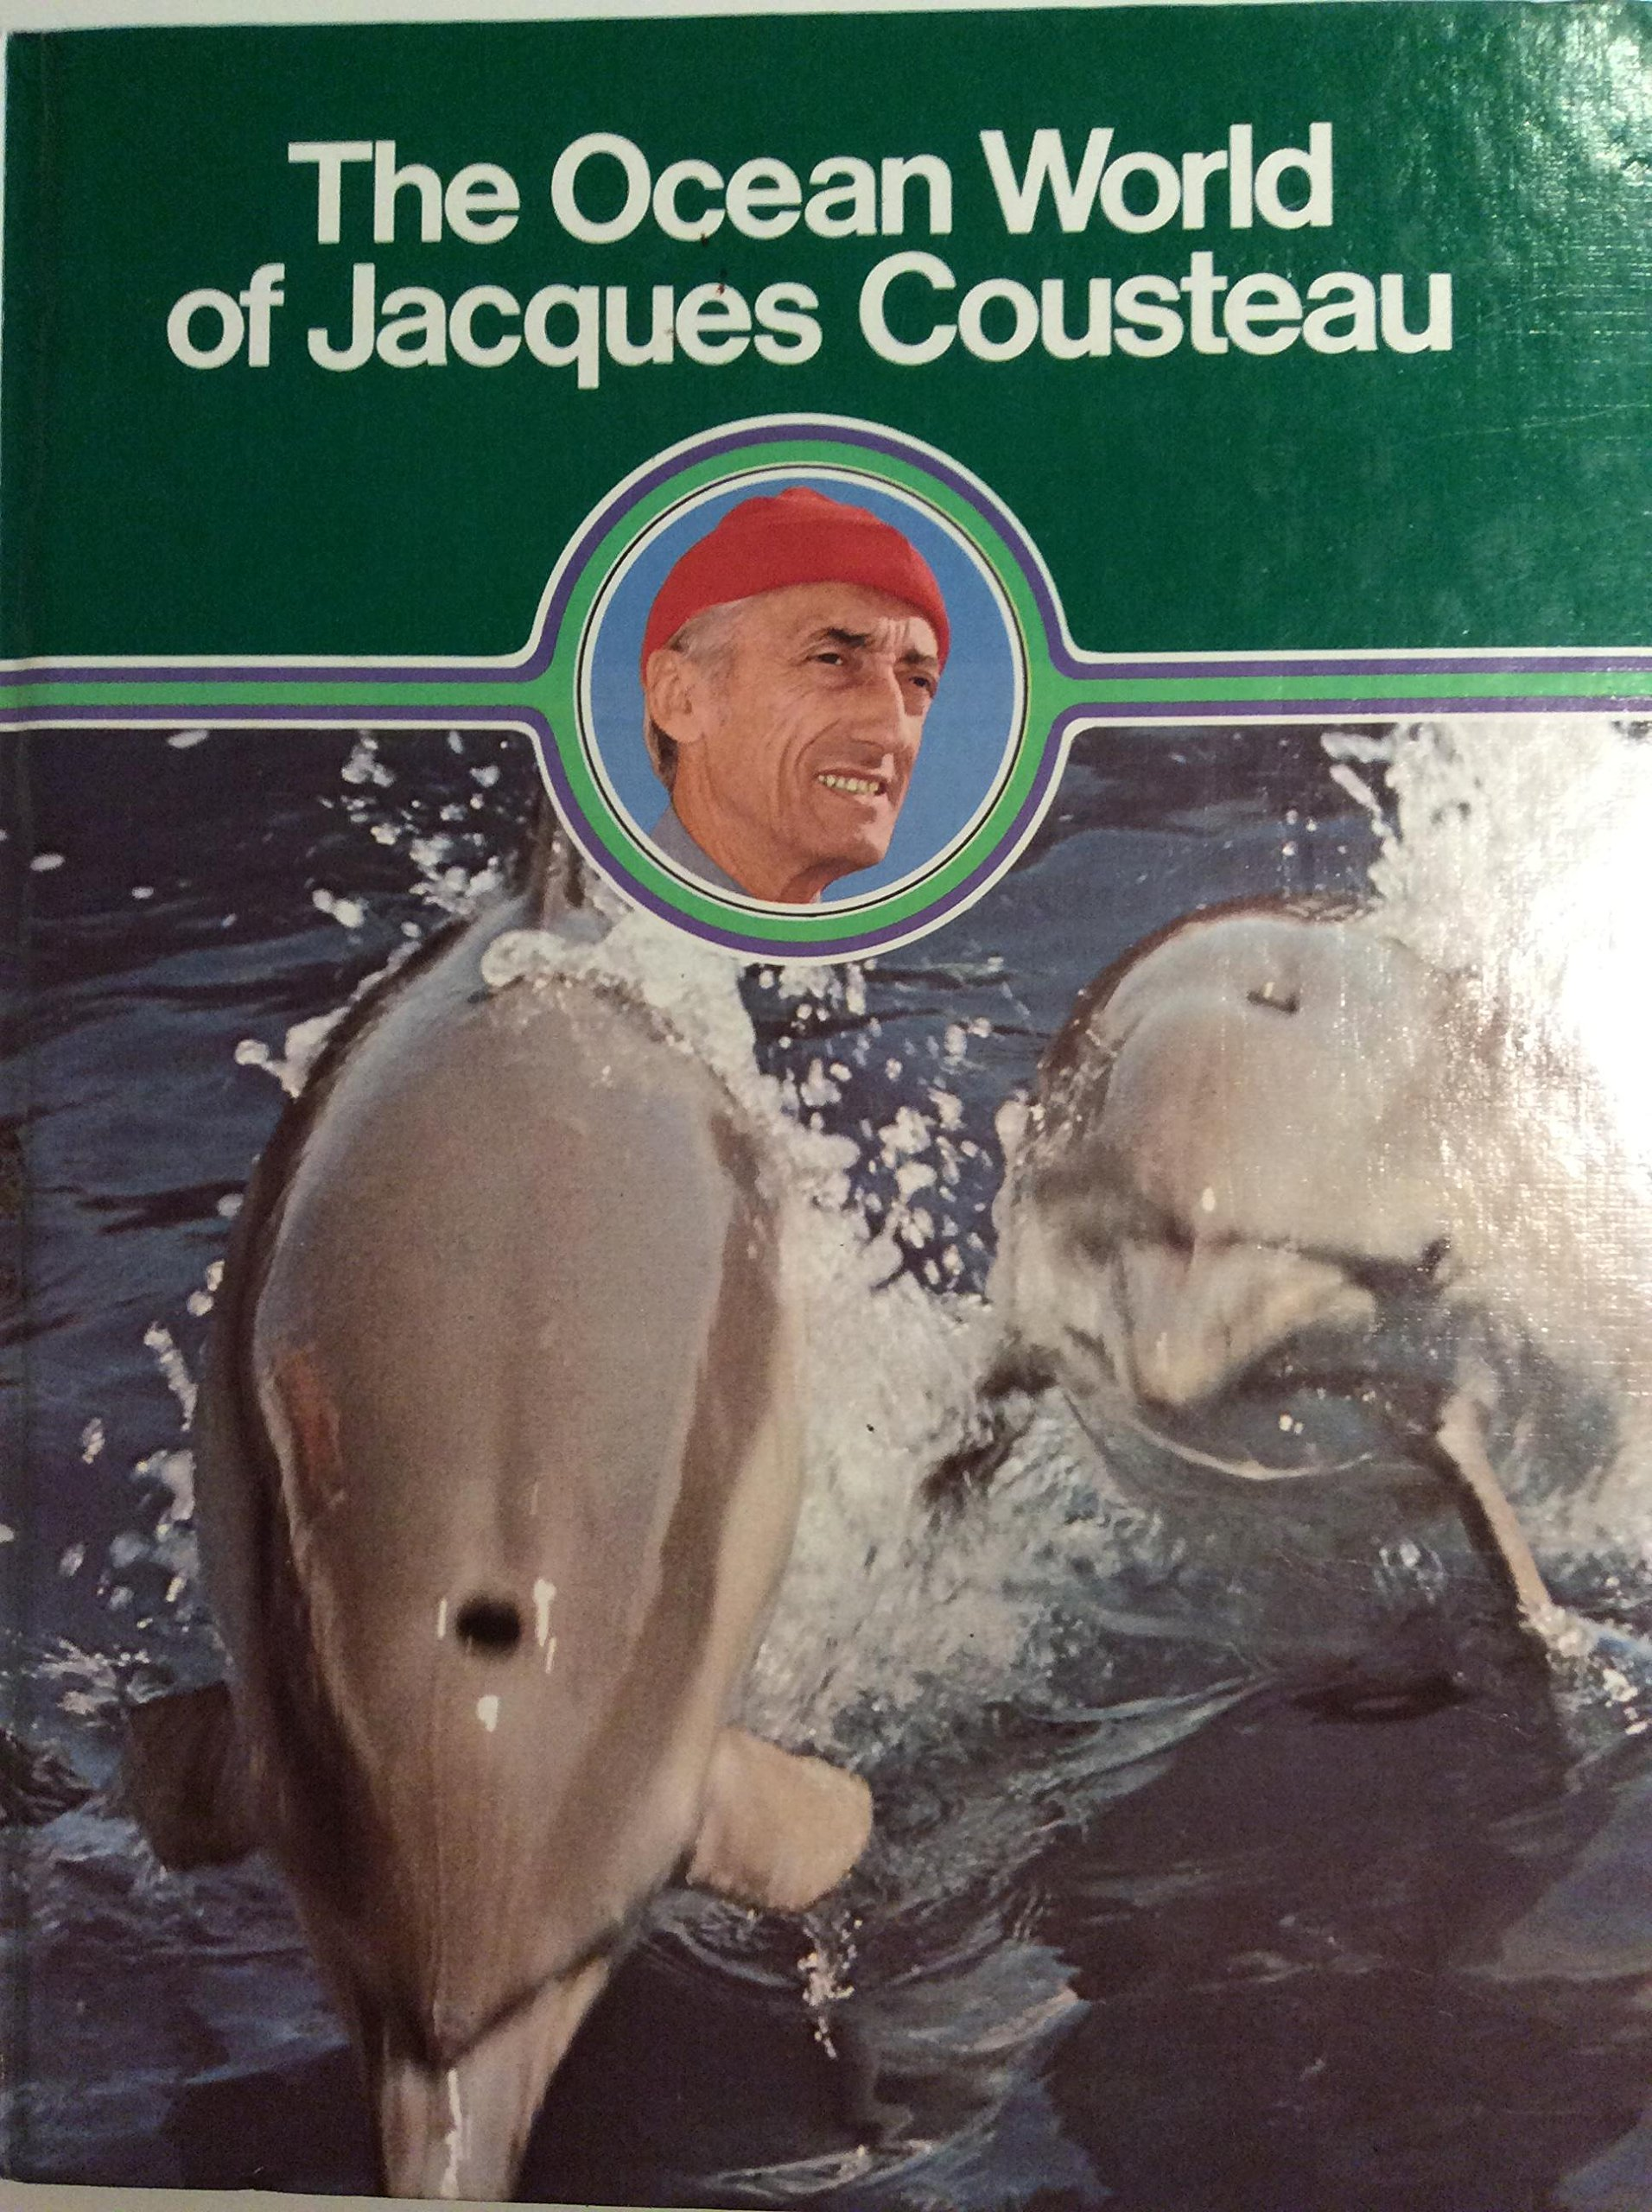 Outer And Inner Space Jacques Cousteau The Ocean World Antiques